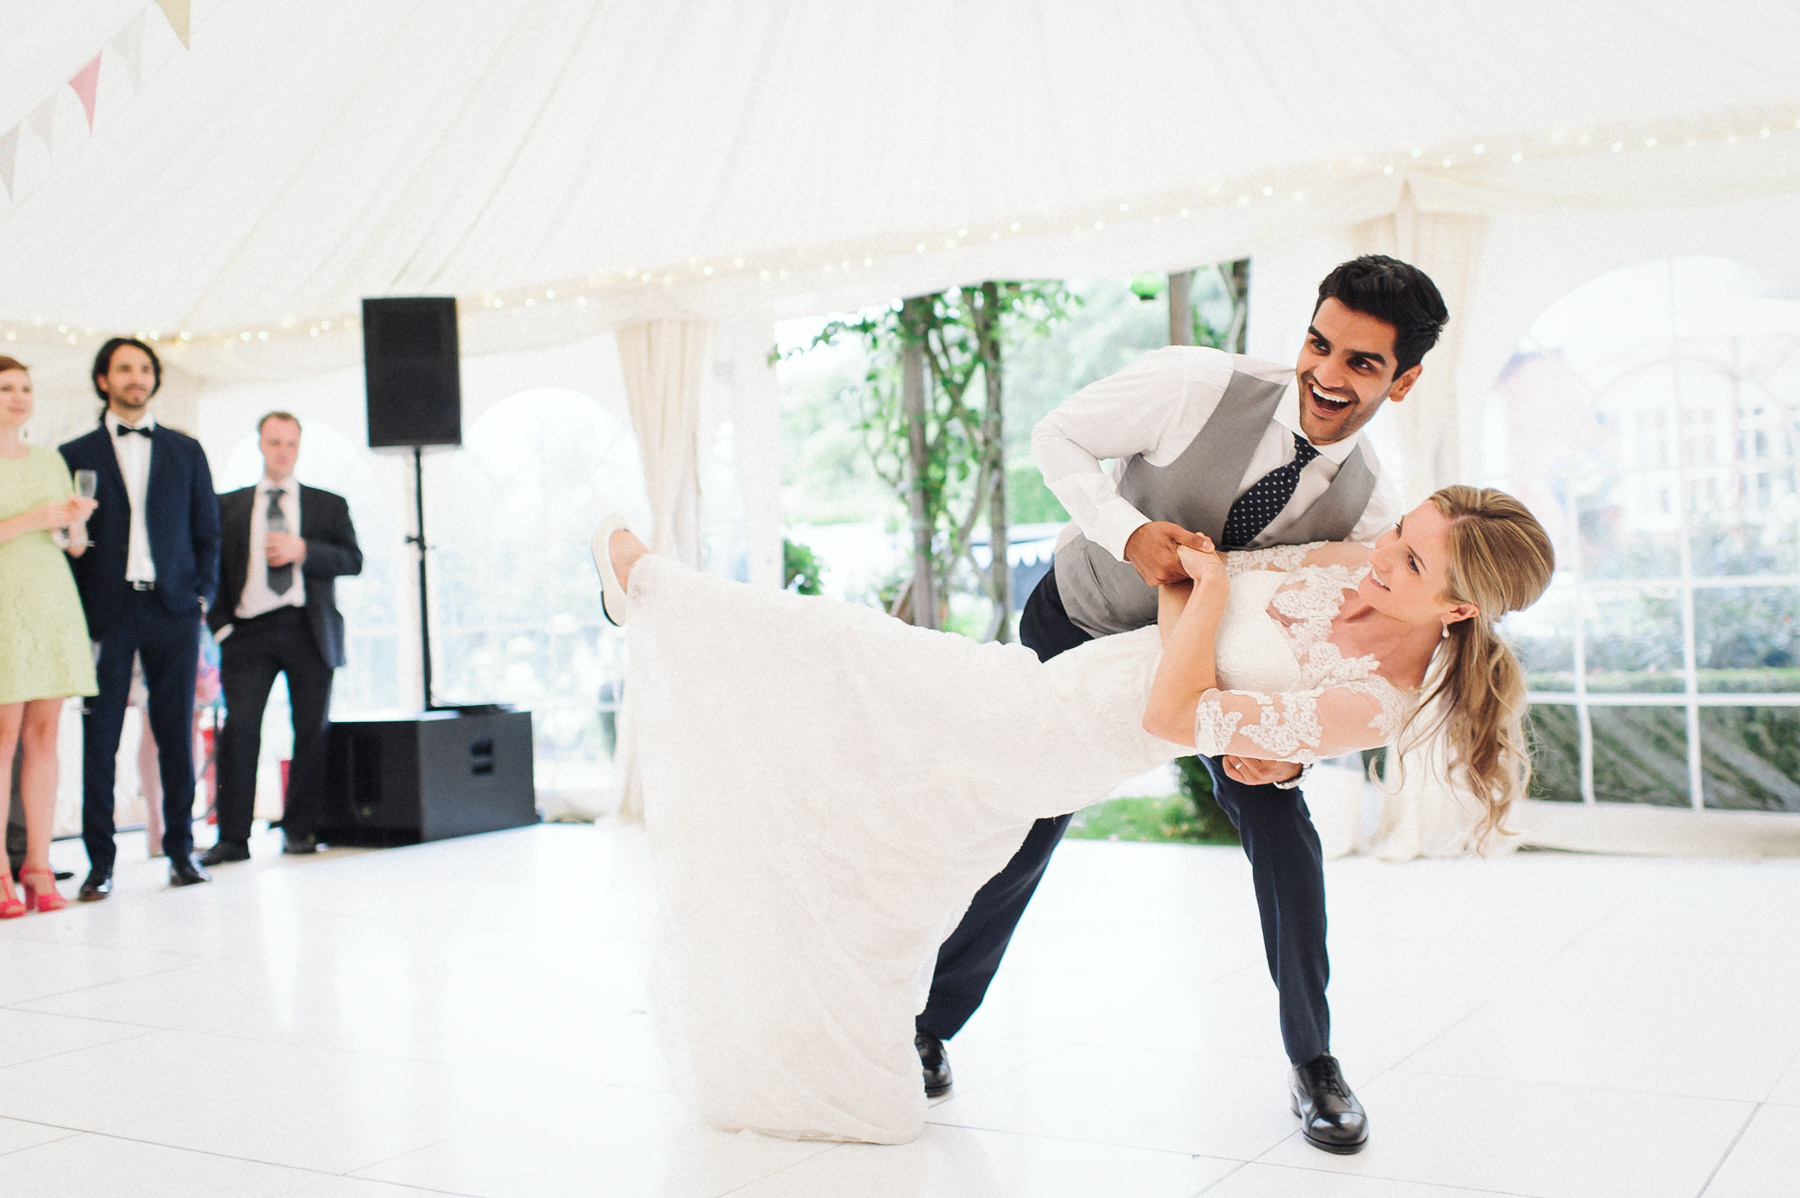 the dance lessons pay off during the bride and groom's first dance